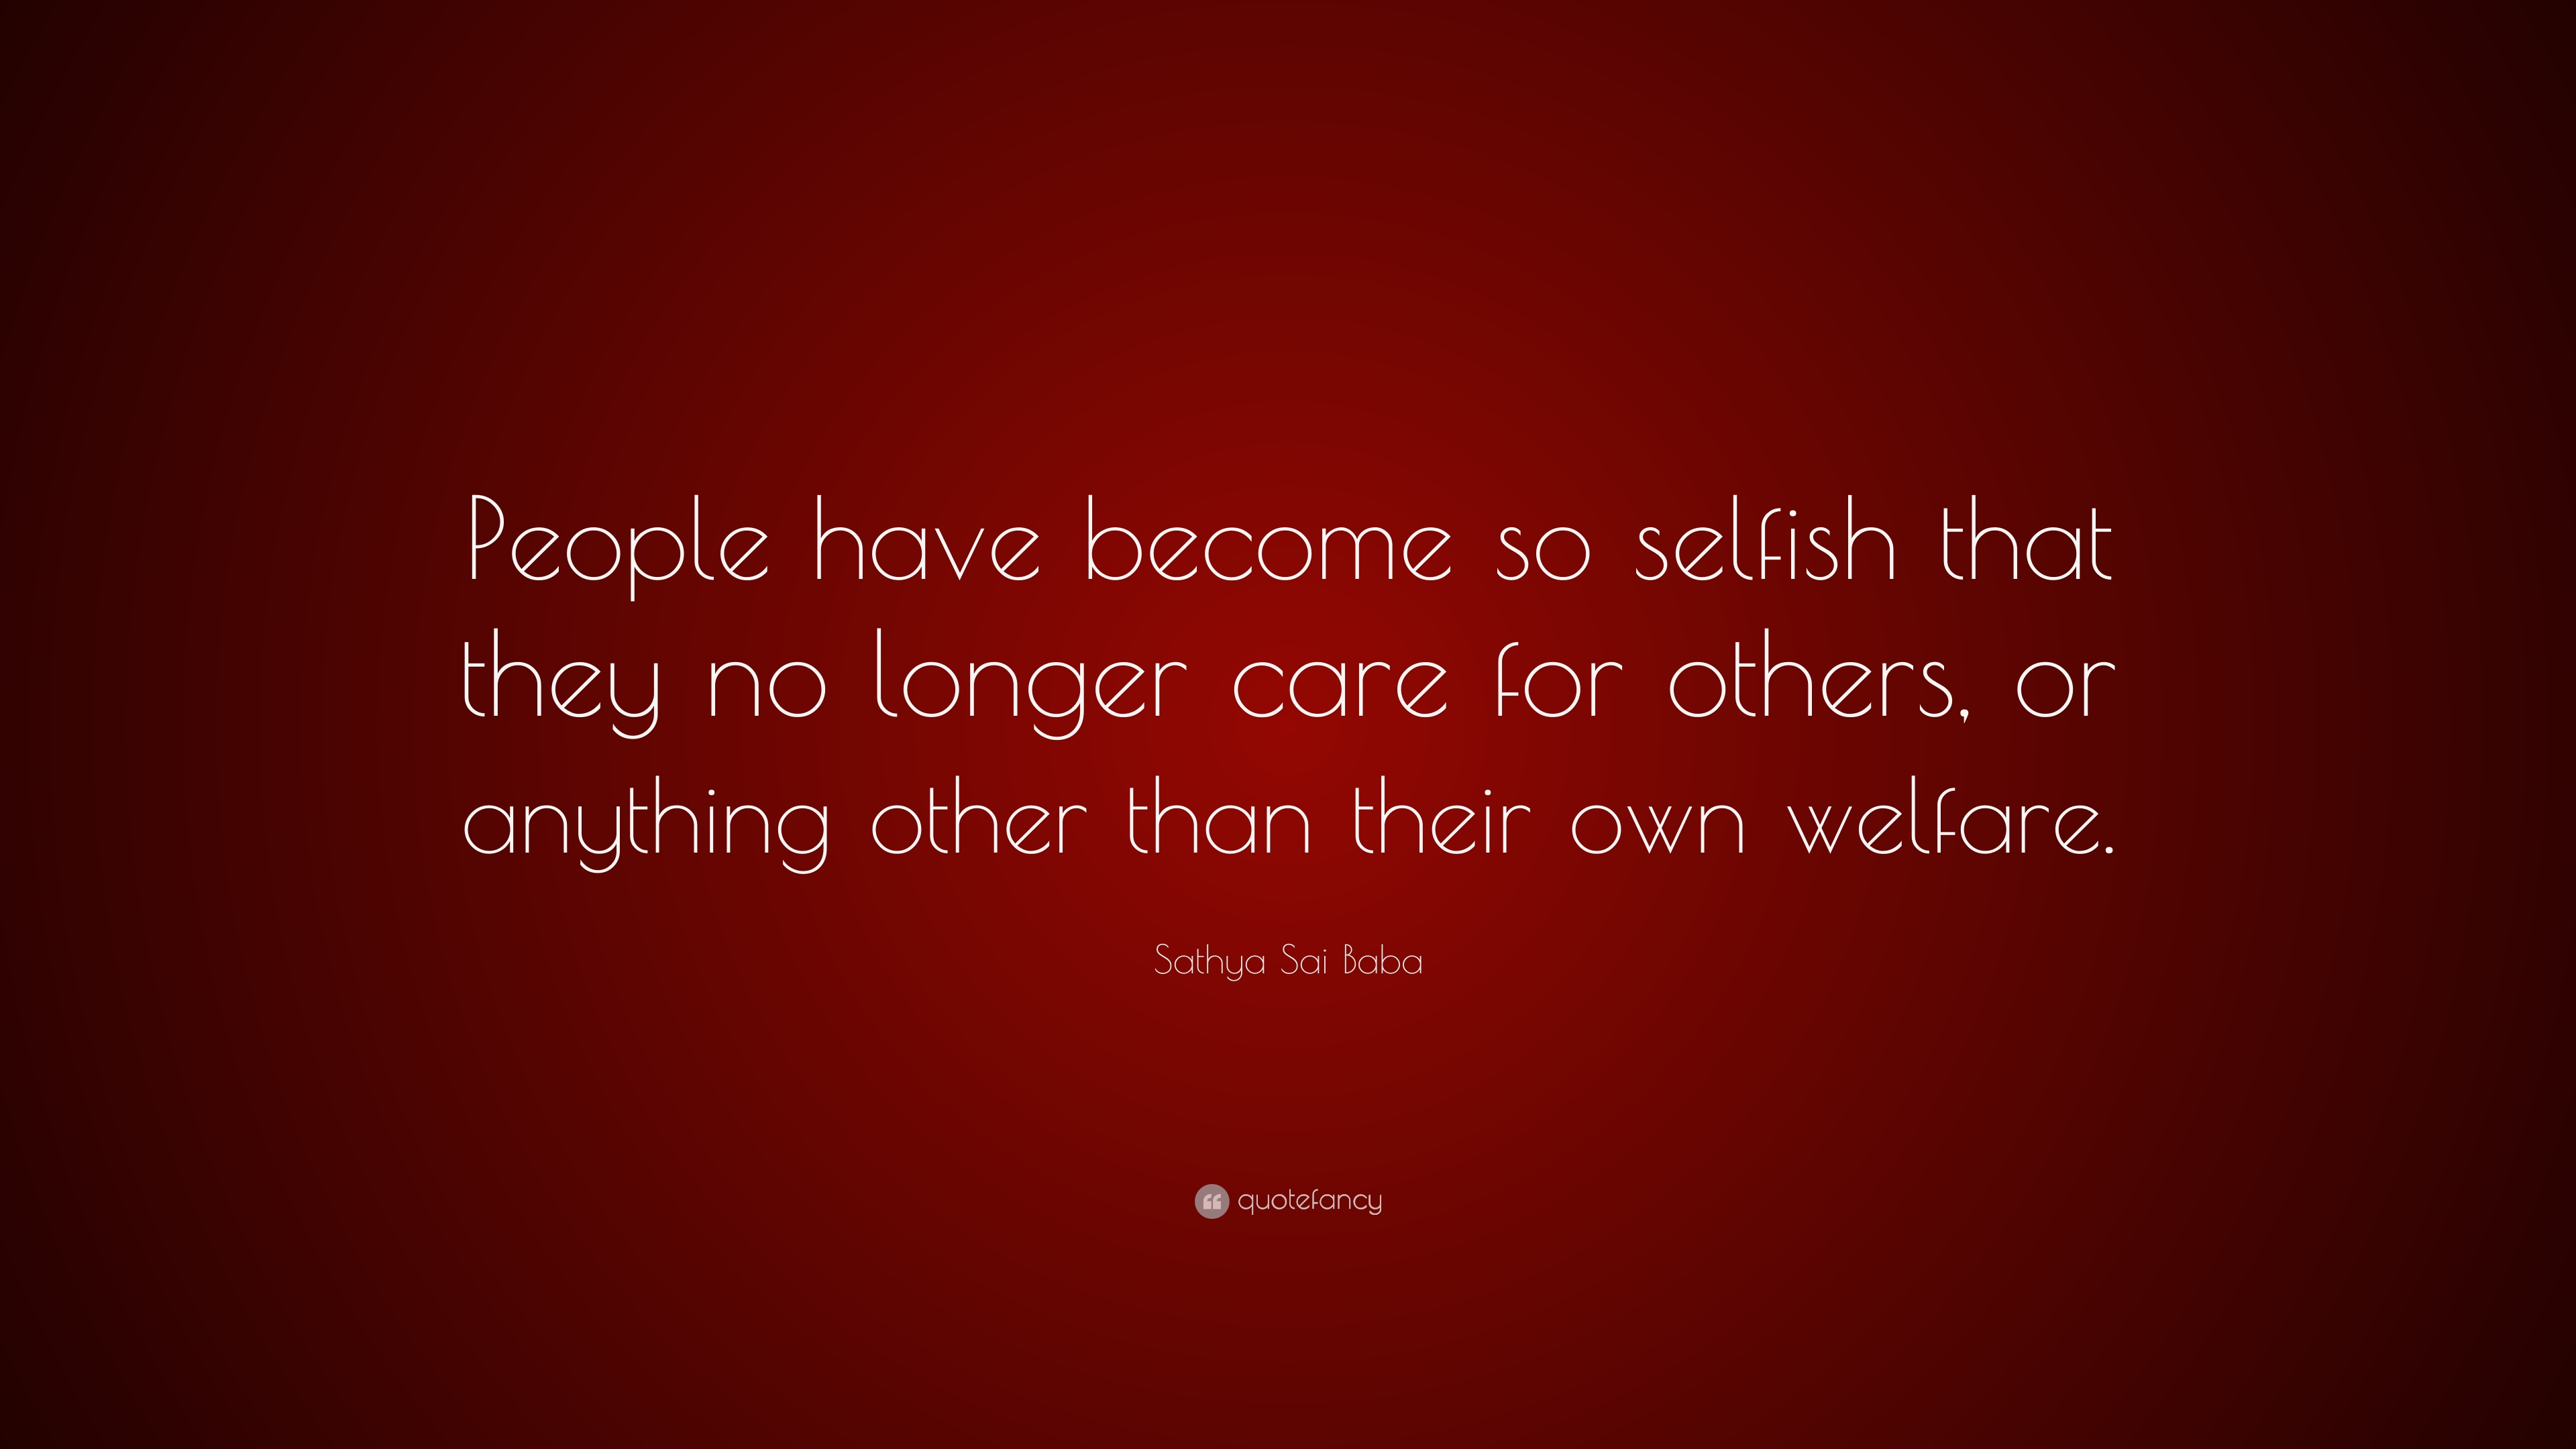 Sathya Sai Baba Quote People Have Become So Selfish That They No